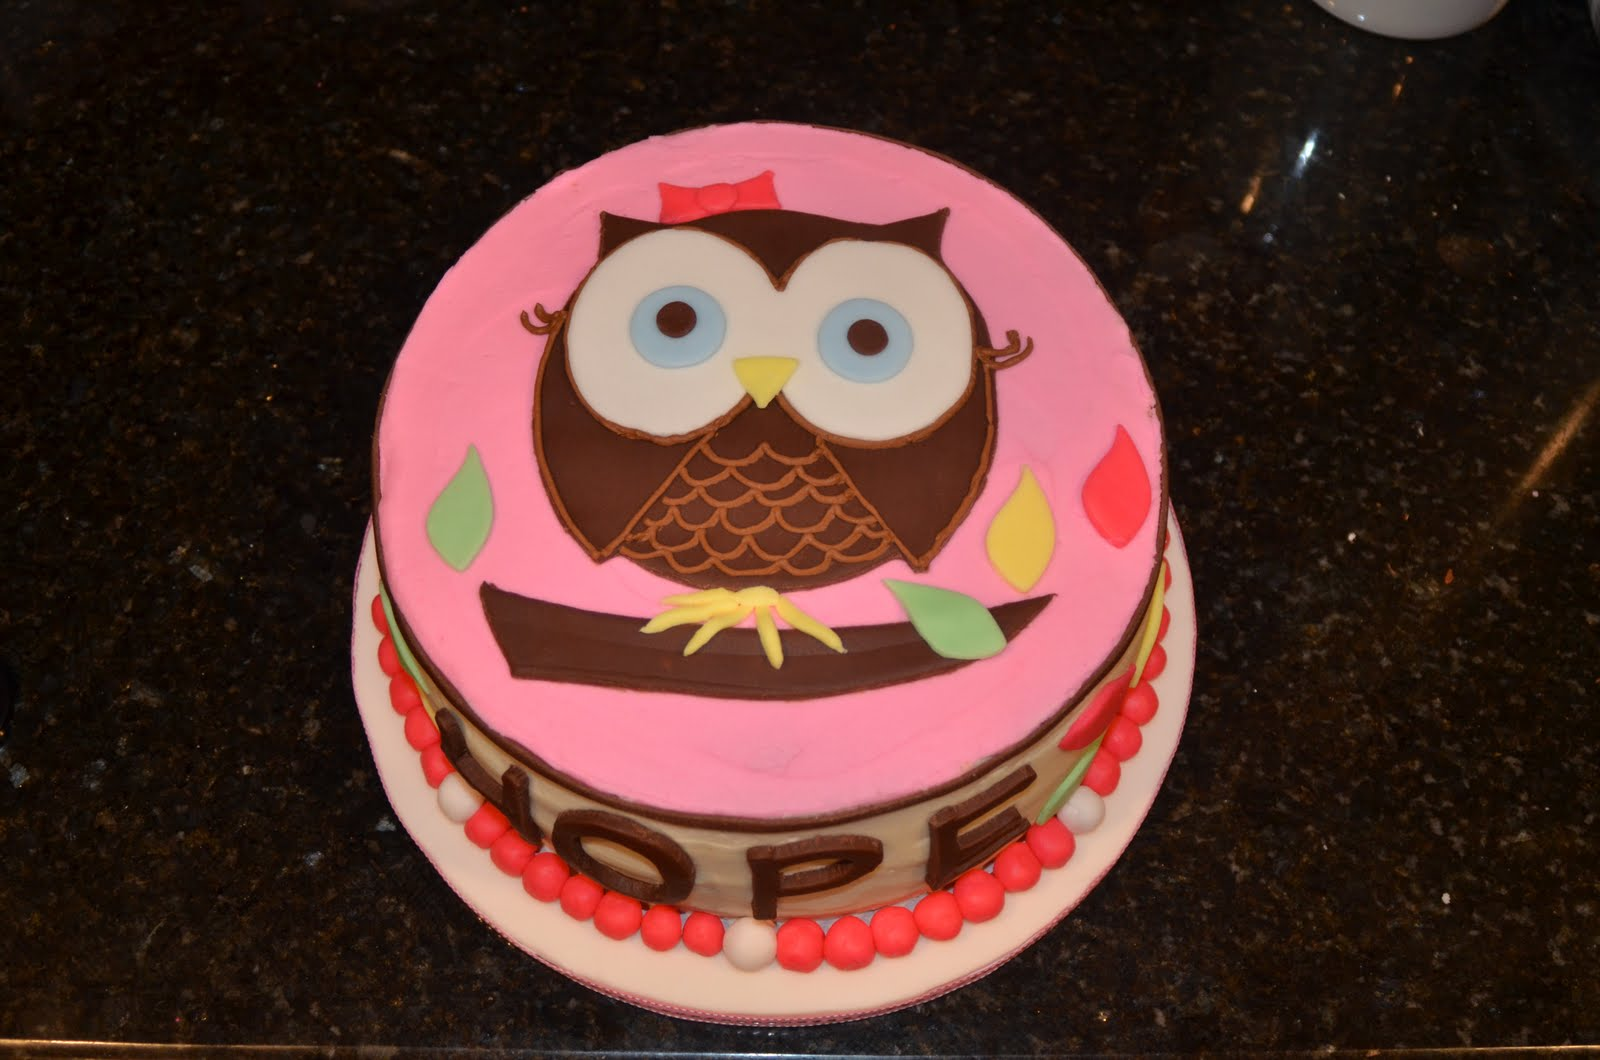 Stupendous Owl Cakes Decoration Ideas Little Birthday Cakes Funny Birthday Cards Online Alyptdamsfinfo